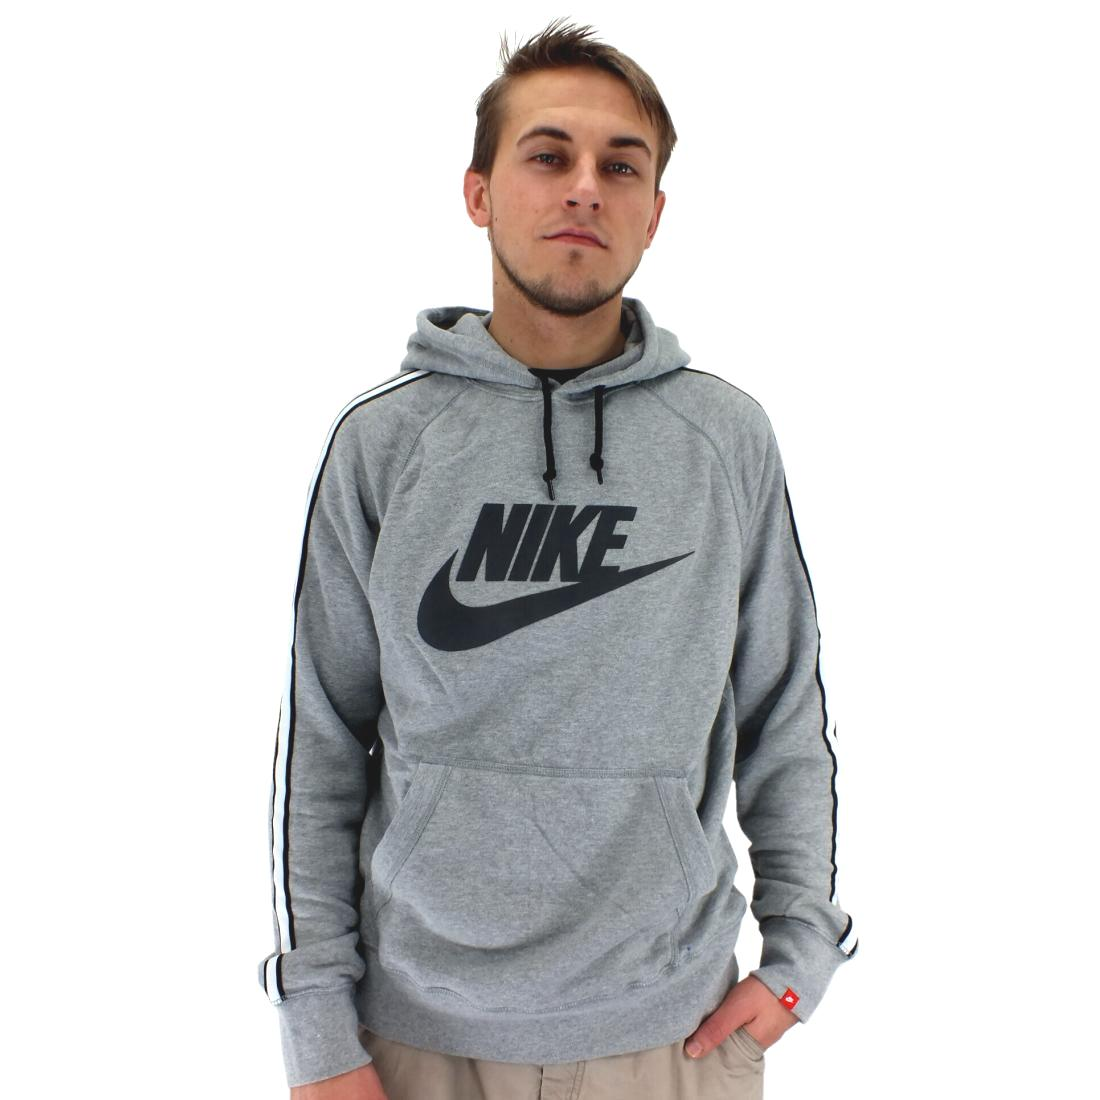 nike aw77 hood logo herren pullover kapuzenpullover sweatshirt schwarz grau. Black Bedroom Furniture Sets. Home Design Ideas